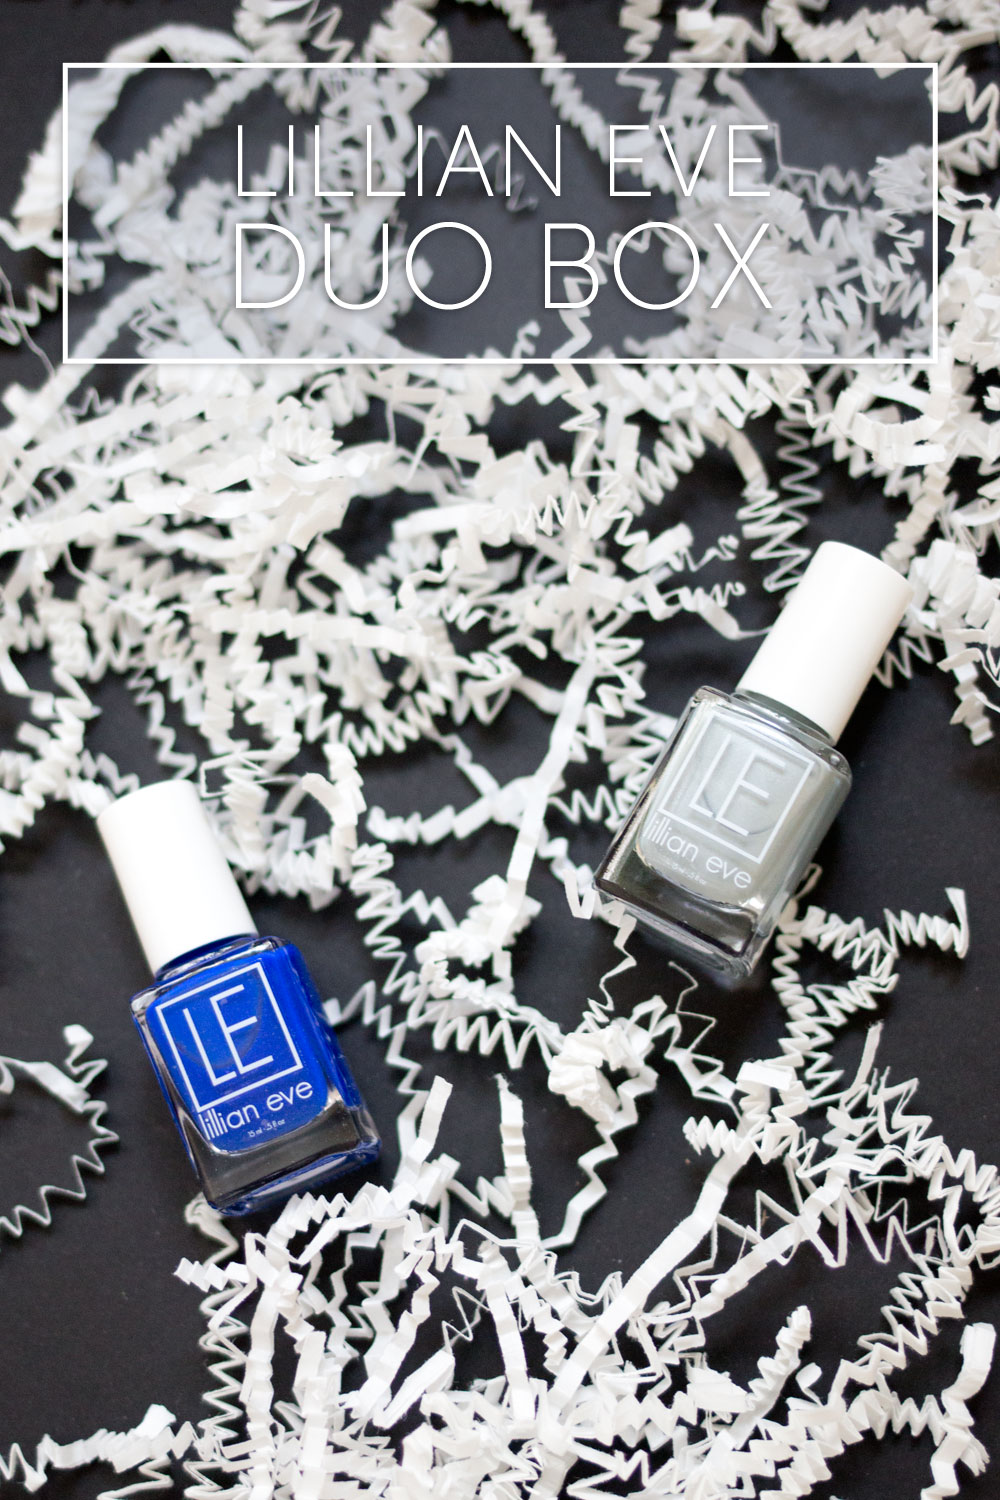 Lillian Eve Nail Polish Duo Box - April 2015 Review & Giveaway / hellorigby seattle beauty and fashion blog